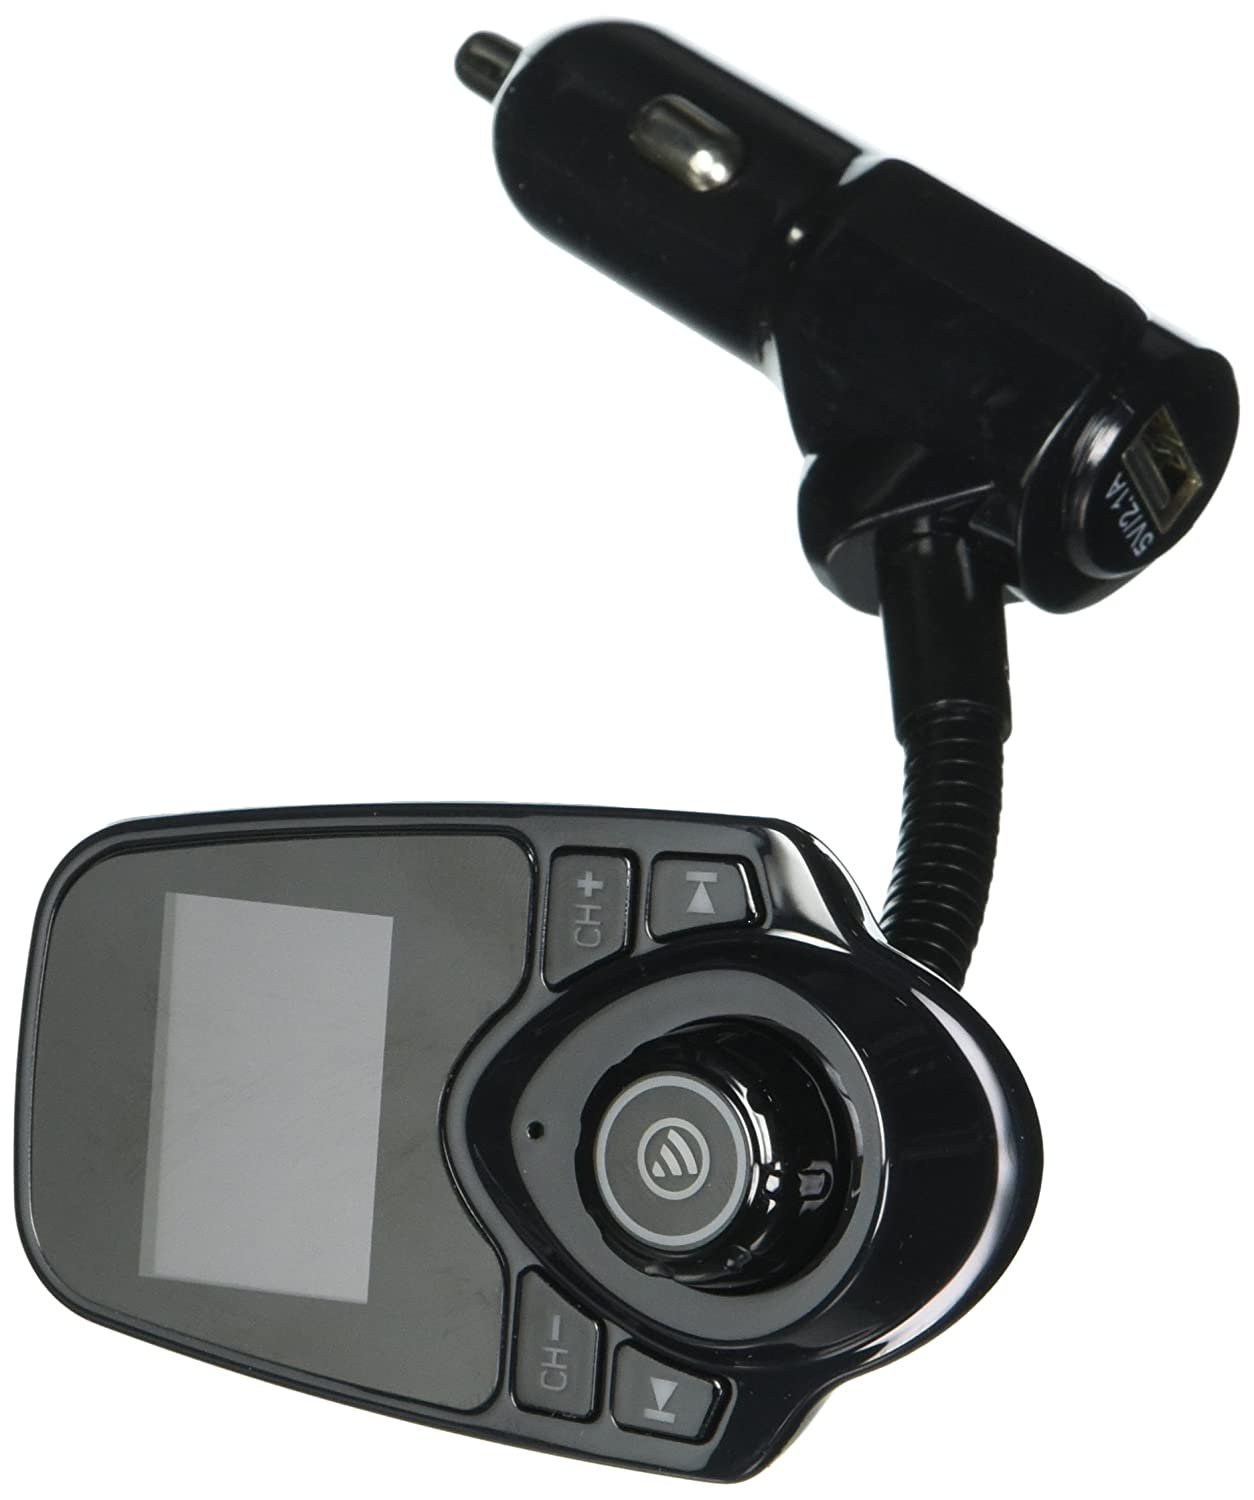 VicTsingワイヤレス車載Bluetooth FM送信機無線アダプタ車キットwith Dual USB Car Charger for iPhone、androidphone、Supoprt Siri Activation B019BZ1XZ0  - -